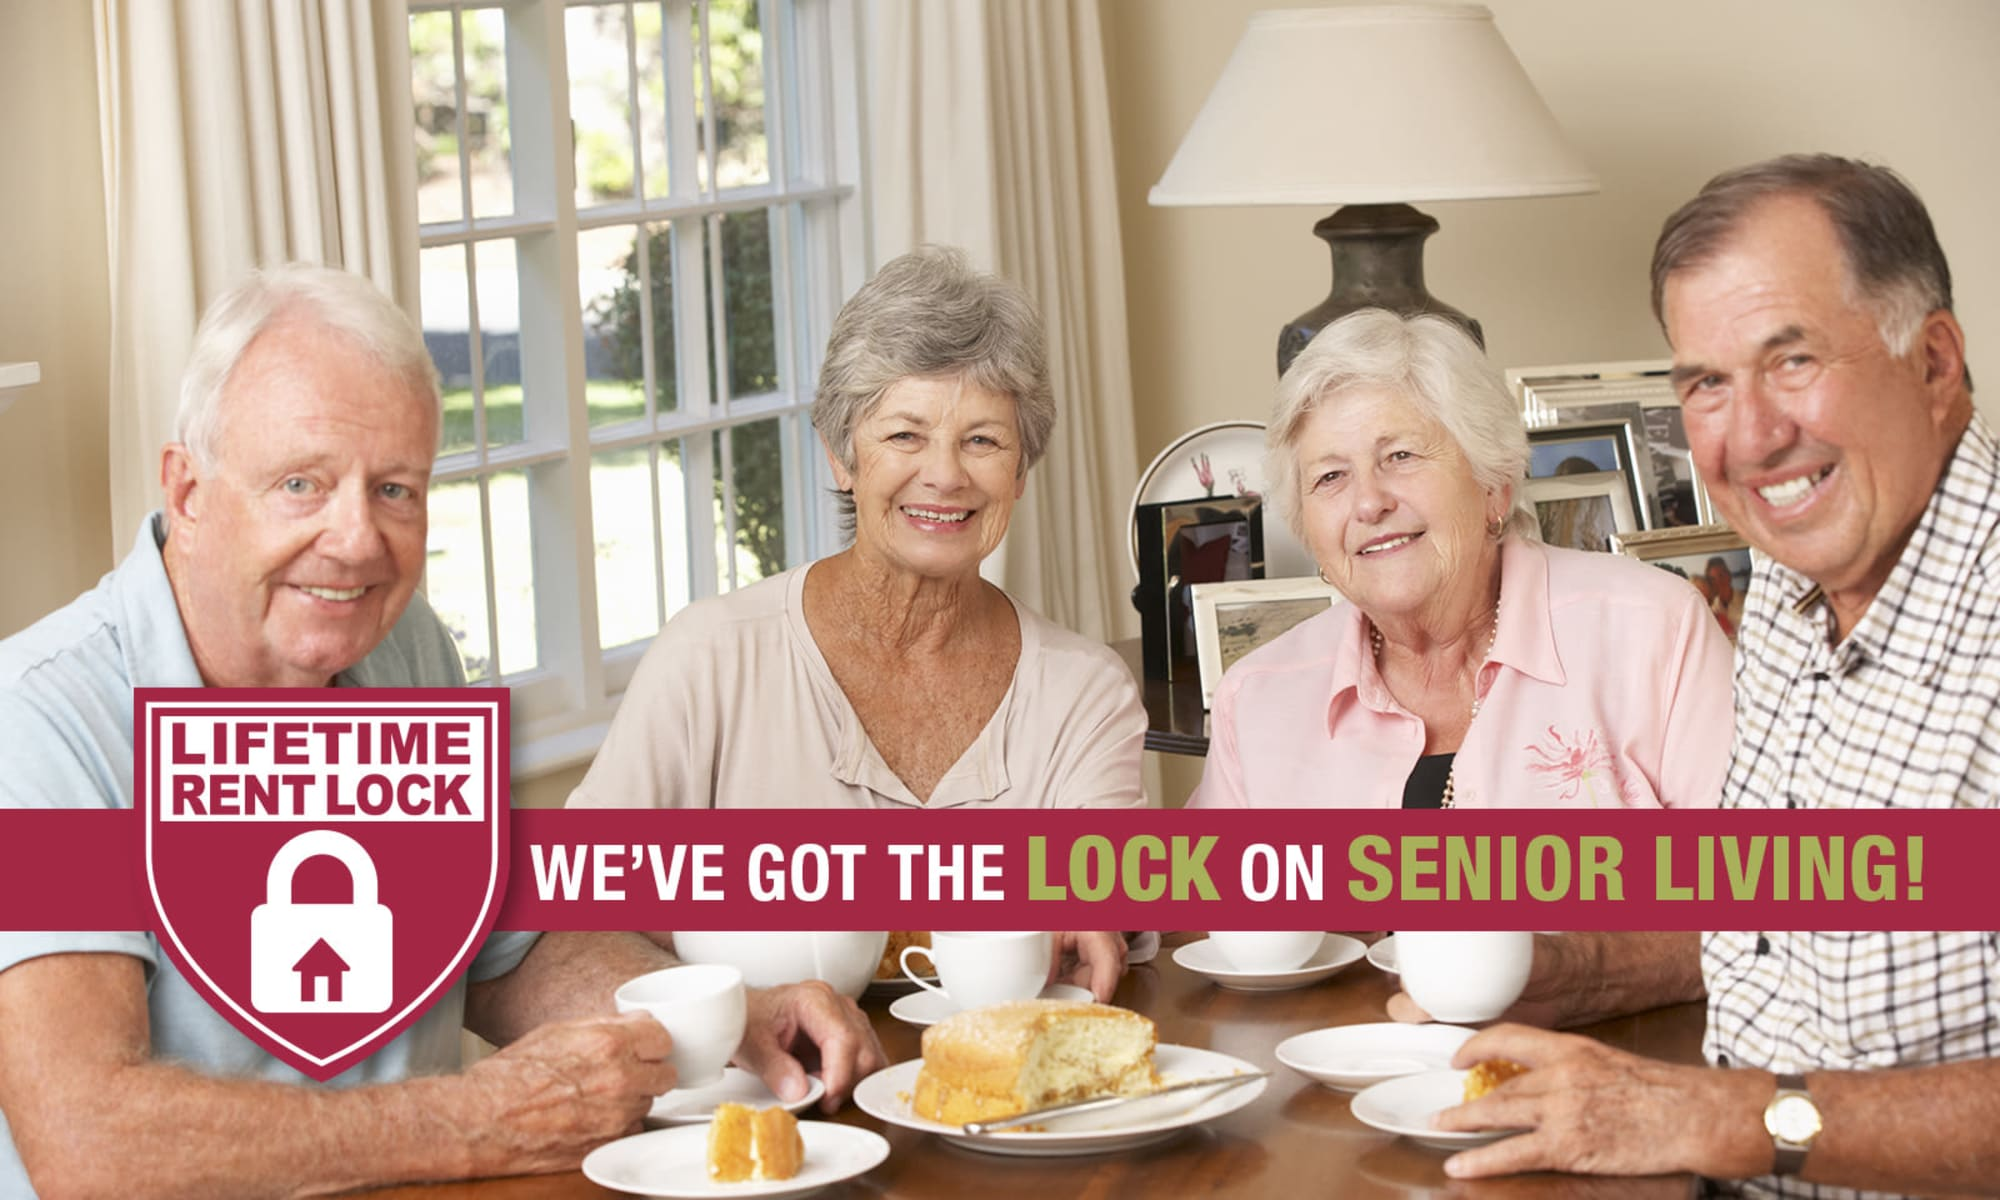 Indianapolis senior living has amazing care options